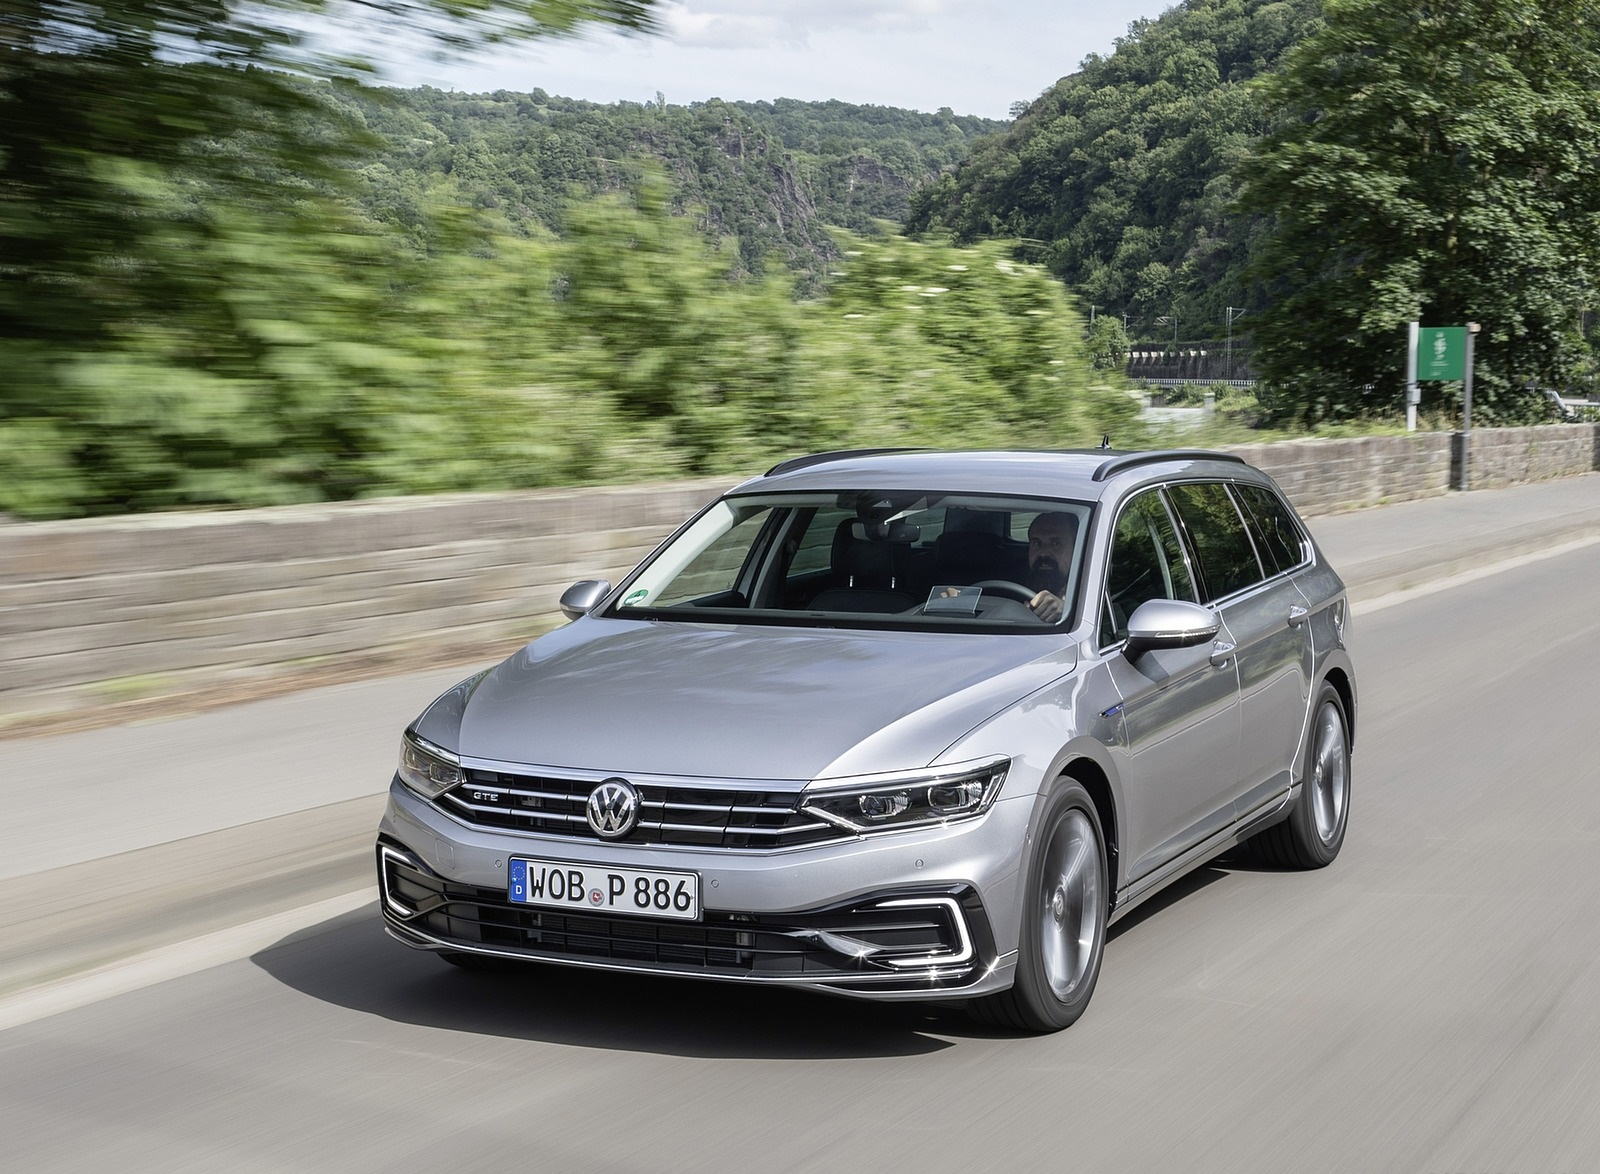 2020 Volkswagen Passat GTE Variant (Plug-In Hybrid EU-Spec) Front Three-Quarter Wallpapers (3)